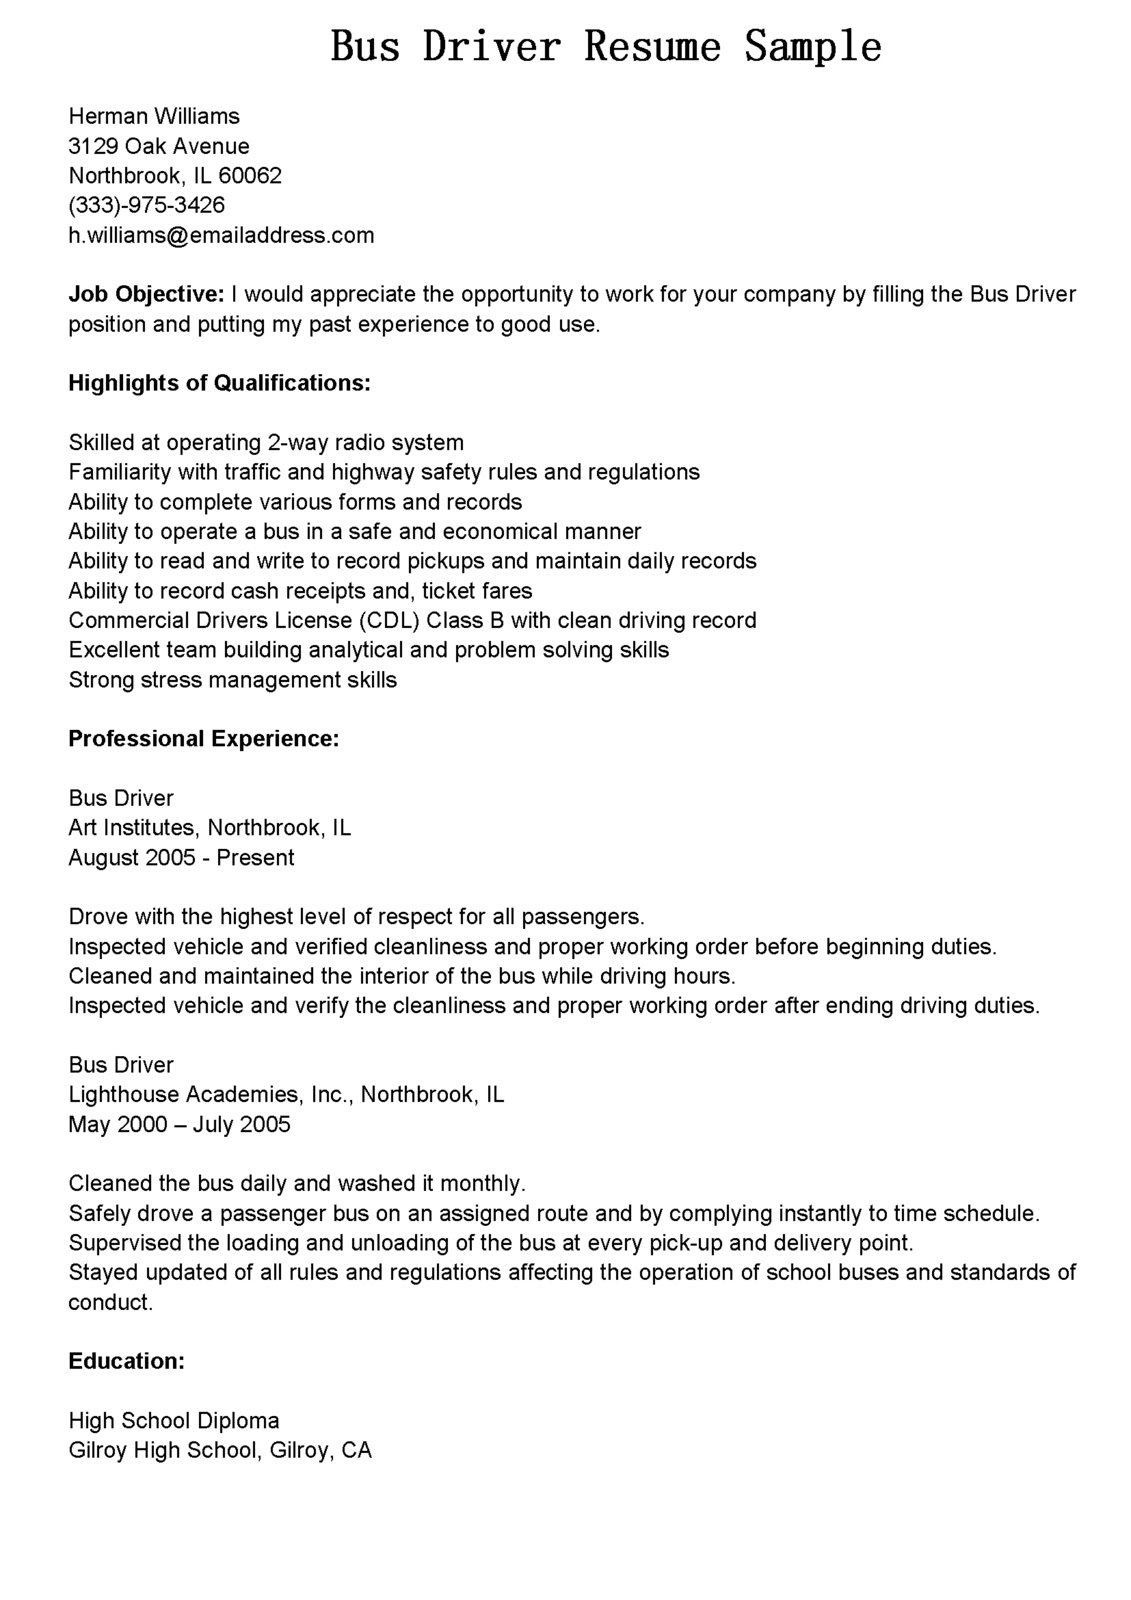 sample resume of bus driver by driver resumes bus driver resume sample